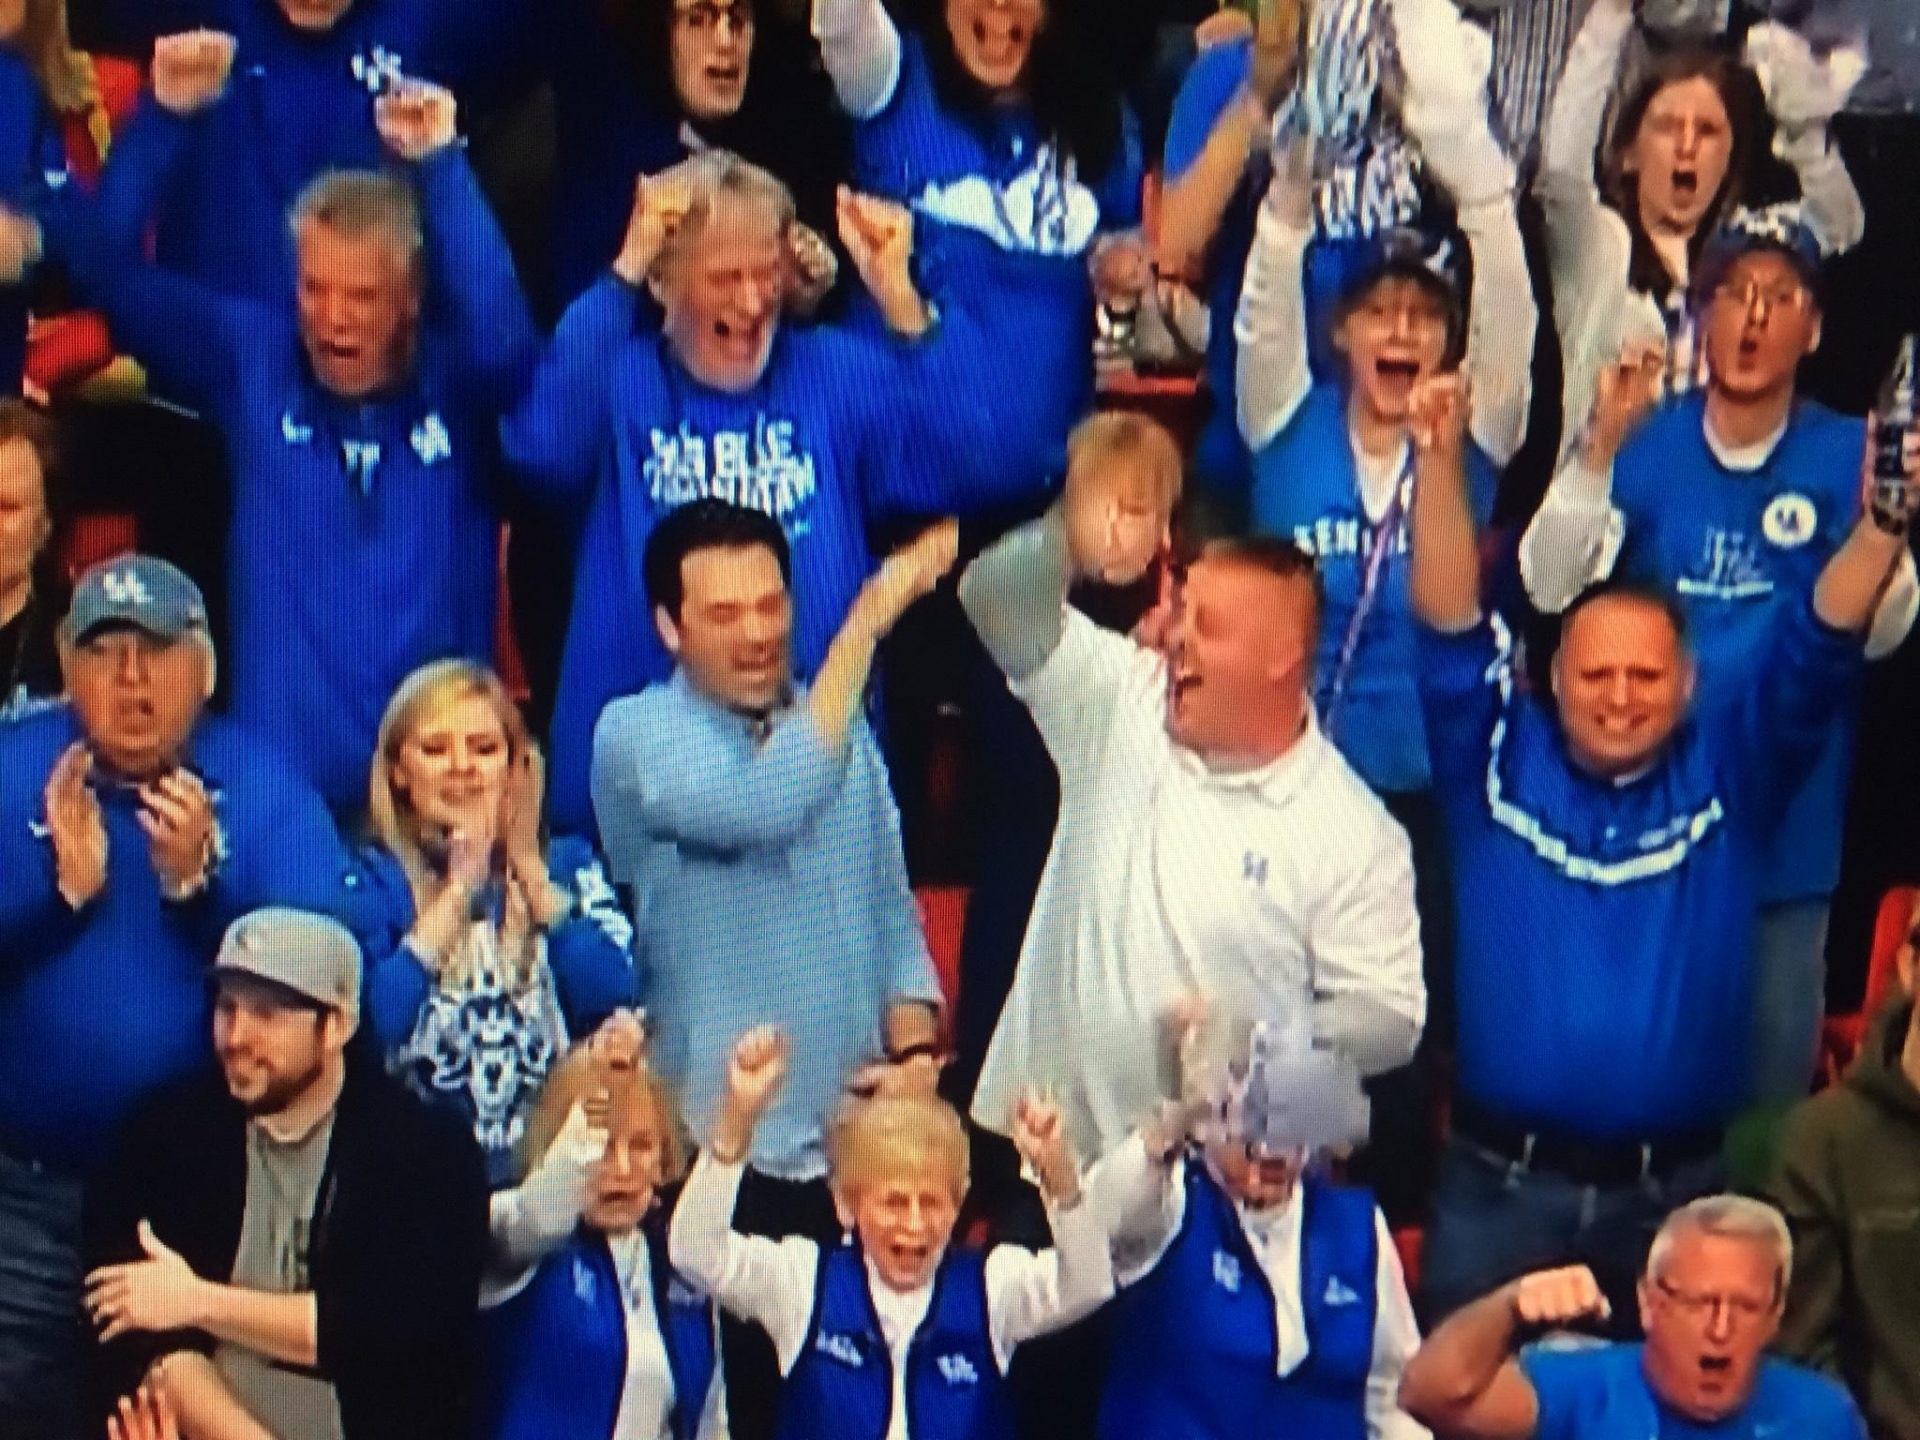 Jim at a Wildcats SEC Championship game, on TV